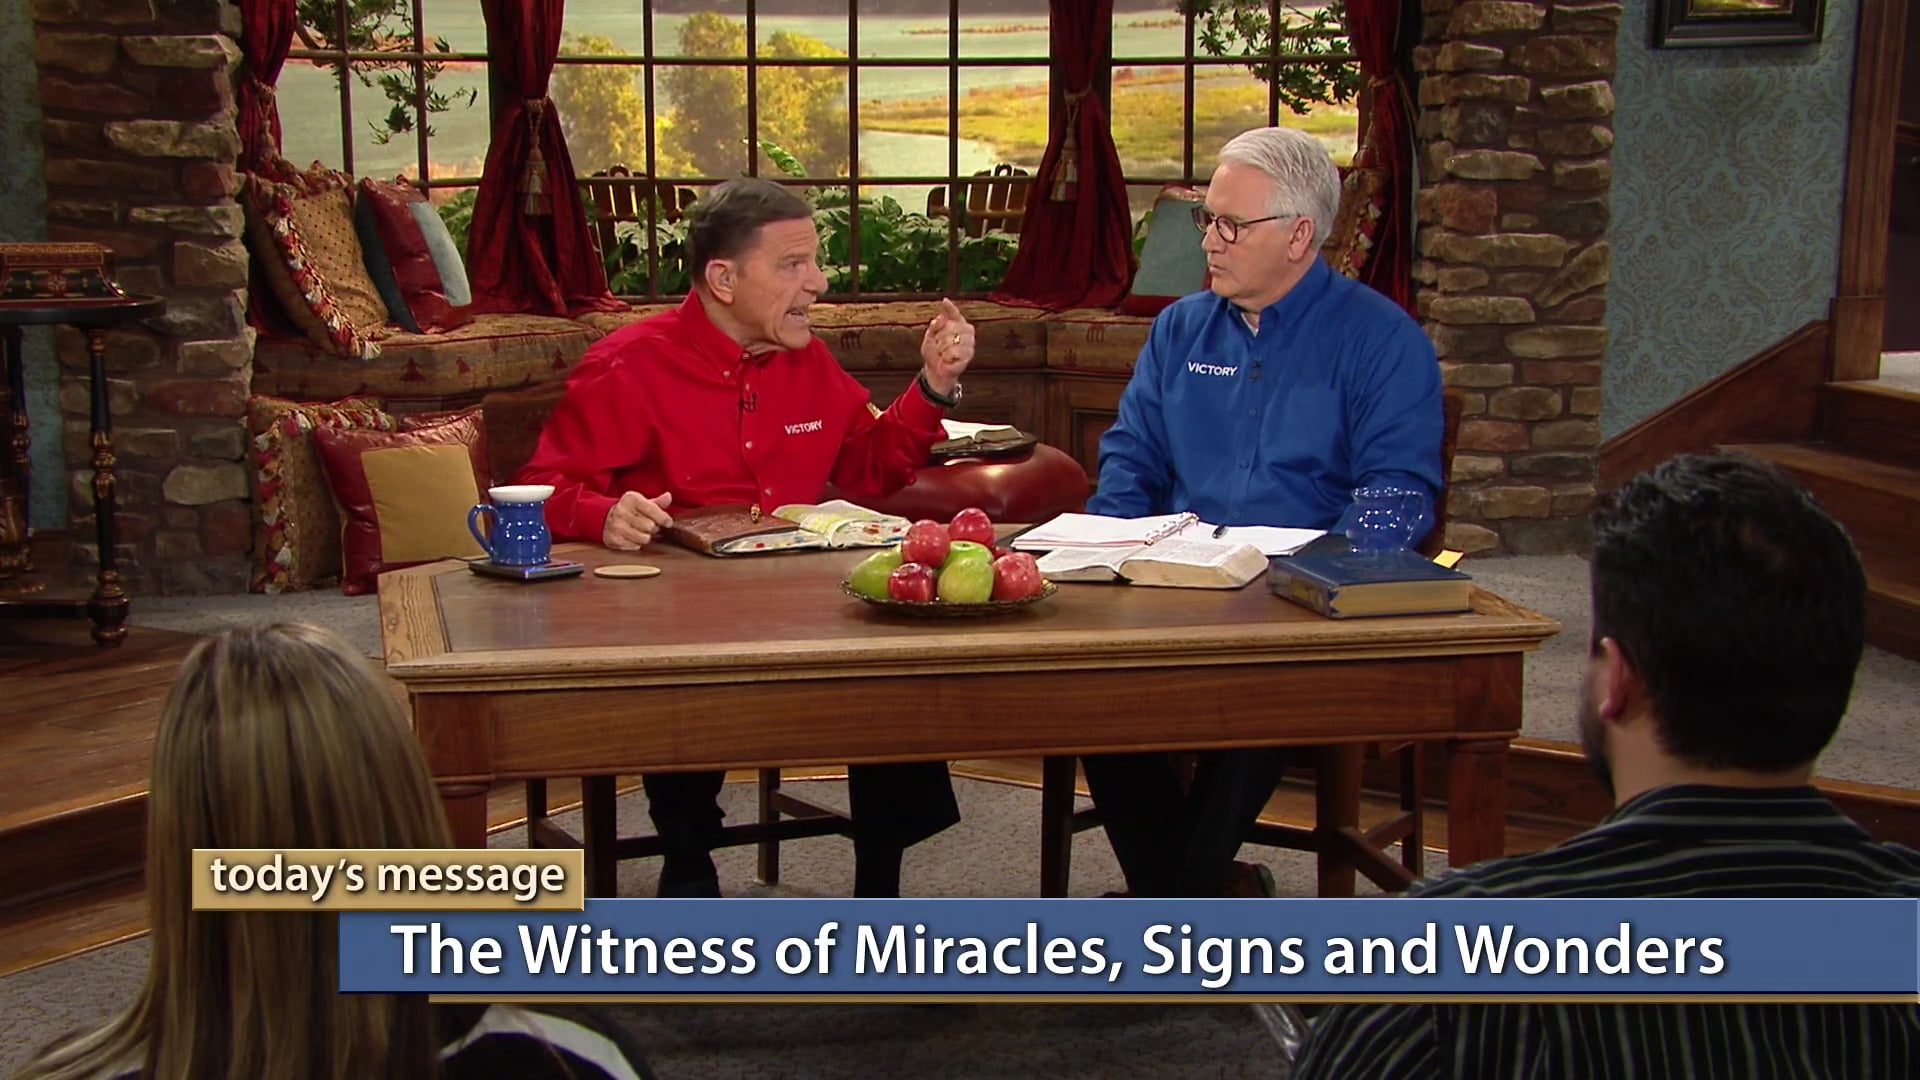 The world we live in today needs Jesus! Watch Believer's Voice of Victory as Kenneth Copeland and Professor Greg Stephens share how we are called to be a witness to all nations in the midst of the evil surrounding us. It's time for the witness of miracles, signs and wonders!